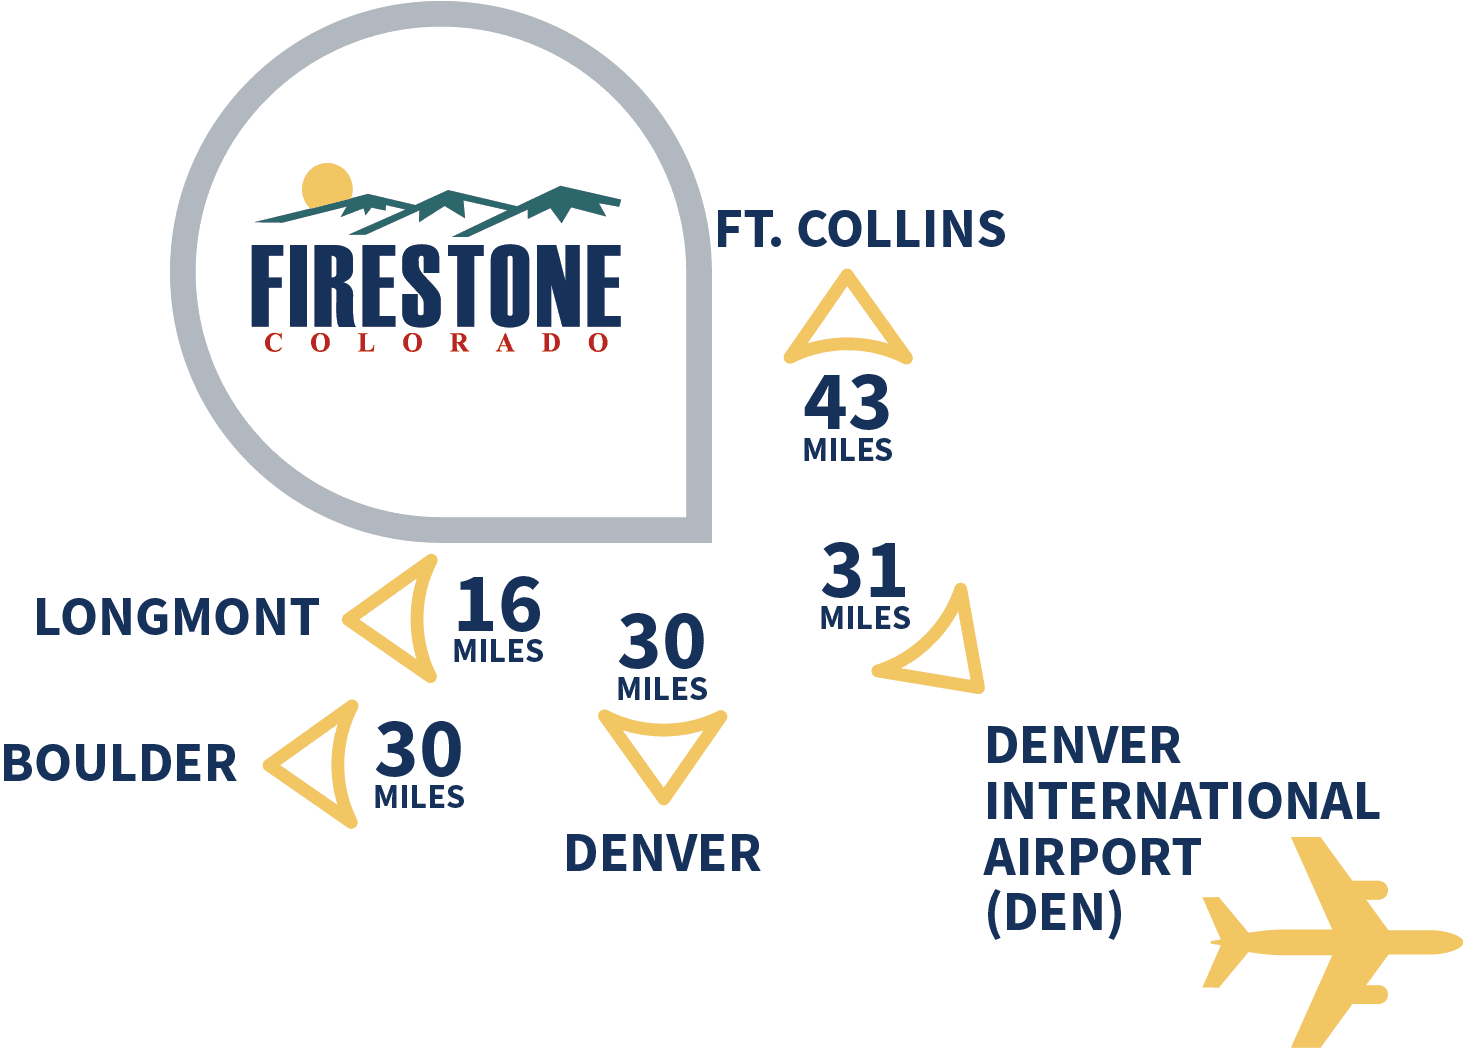 FirestoneCO_Distance_Locations